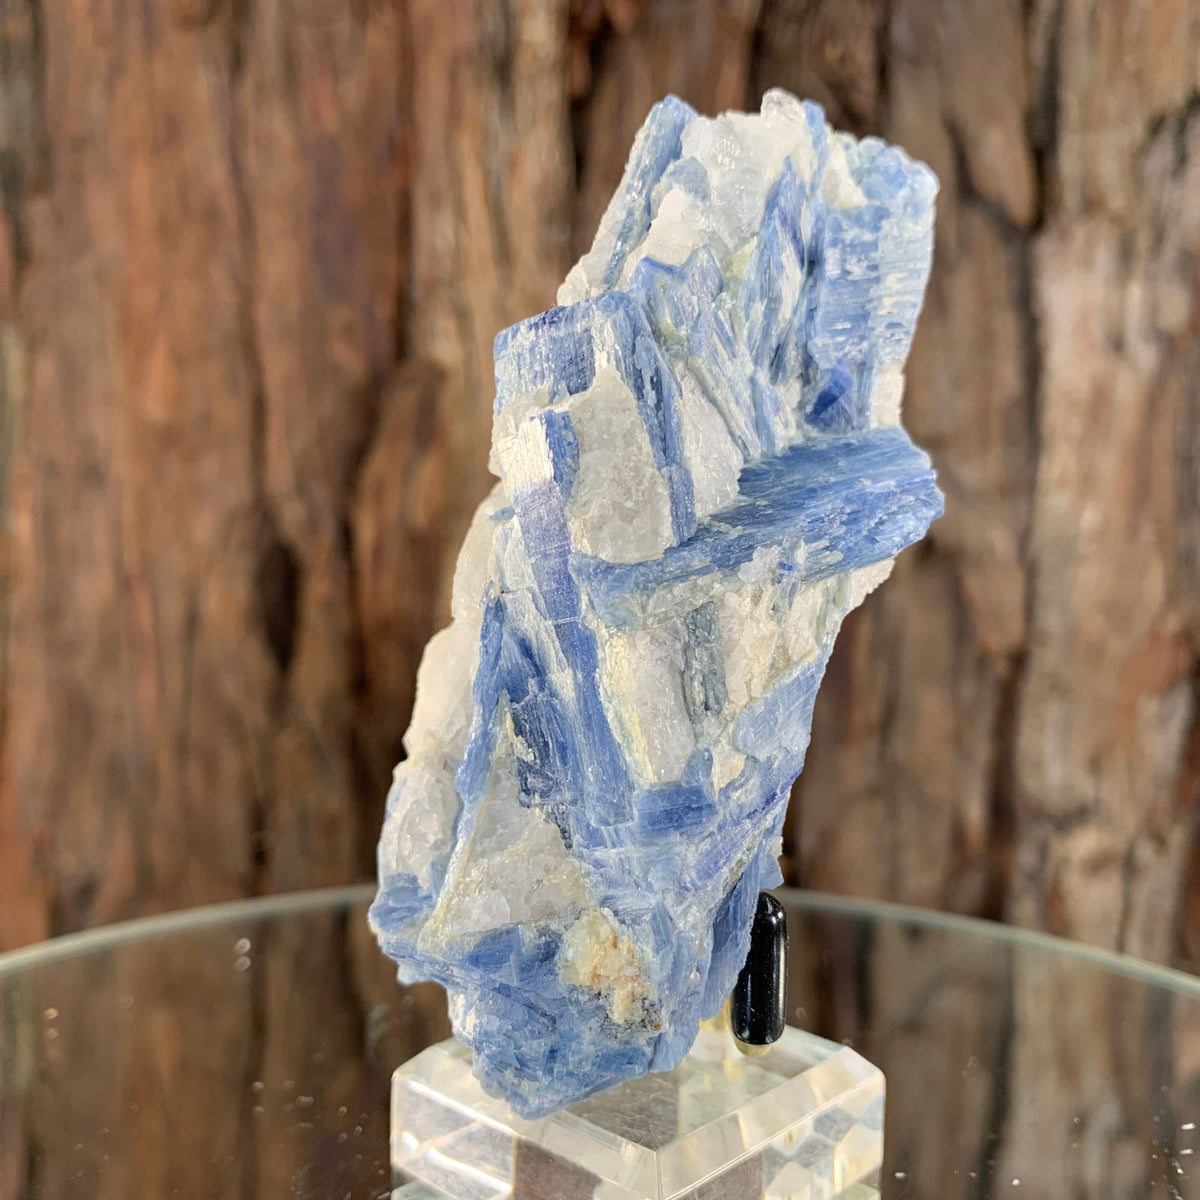 9cm 156g Kyanite with Quartz Crystal from Brazil